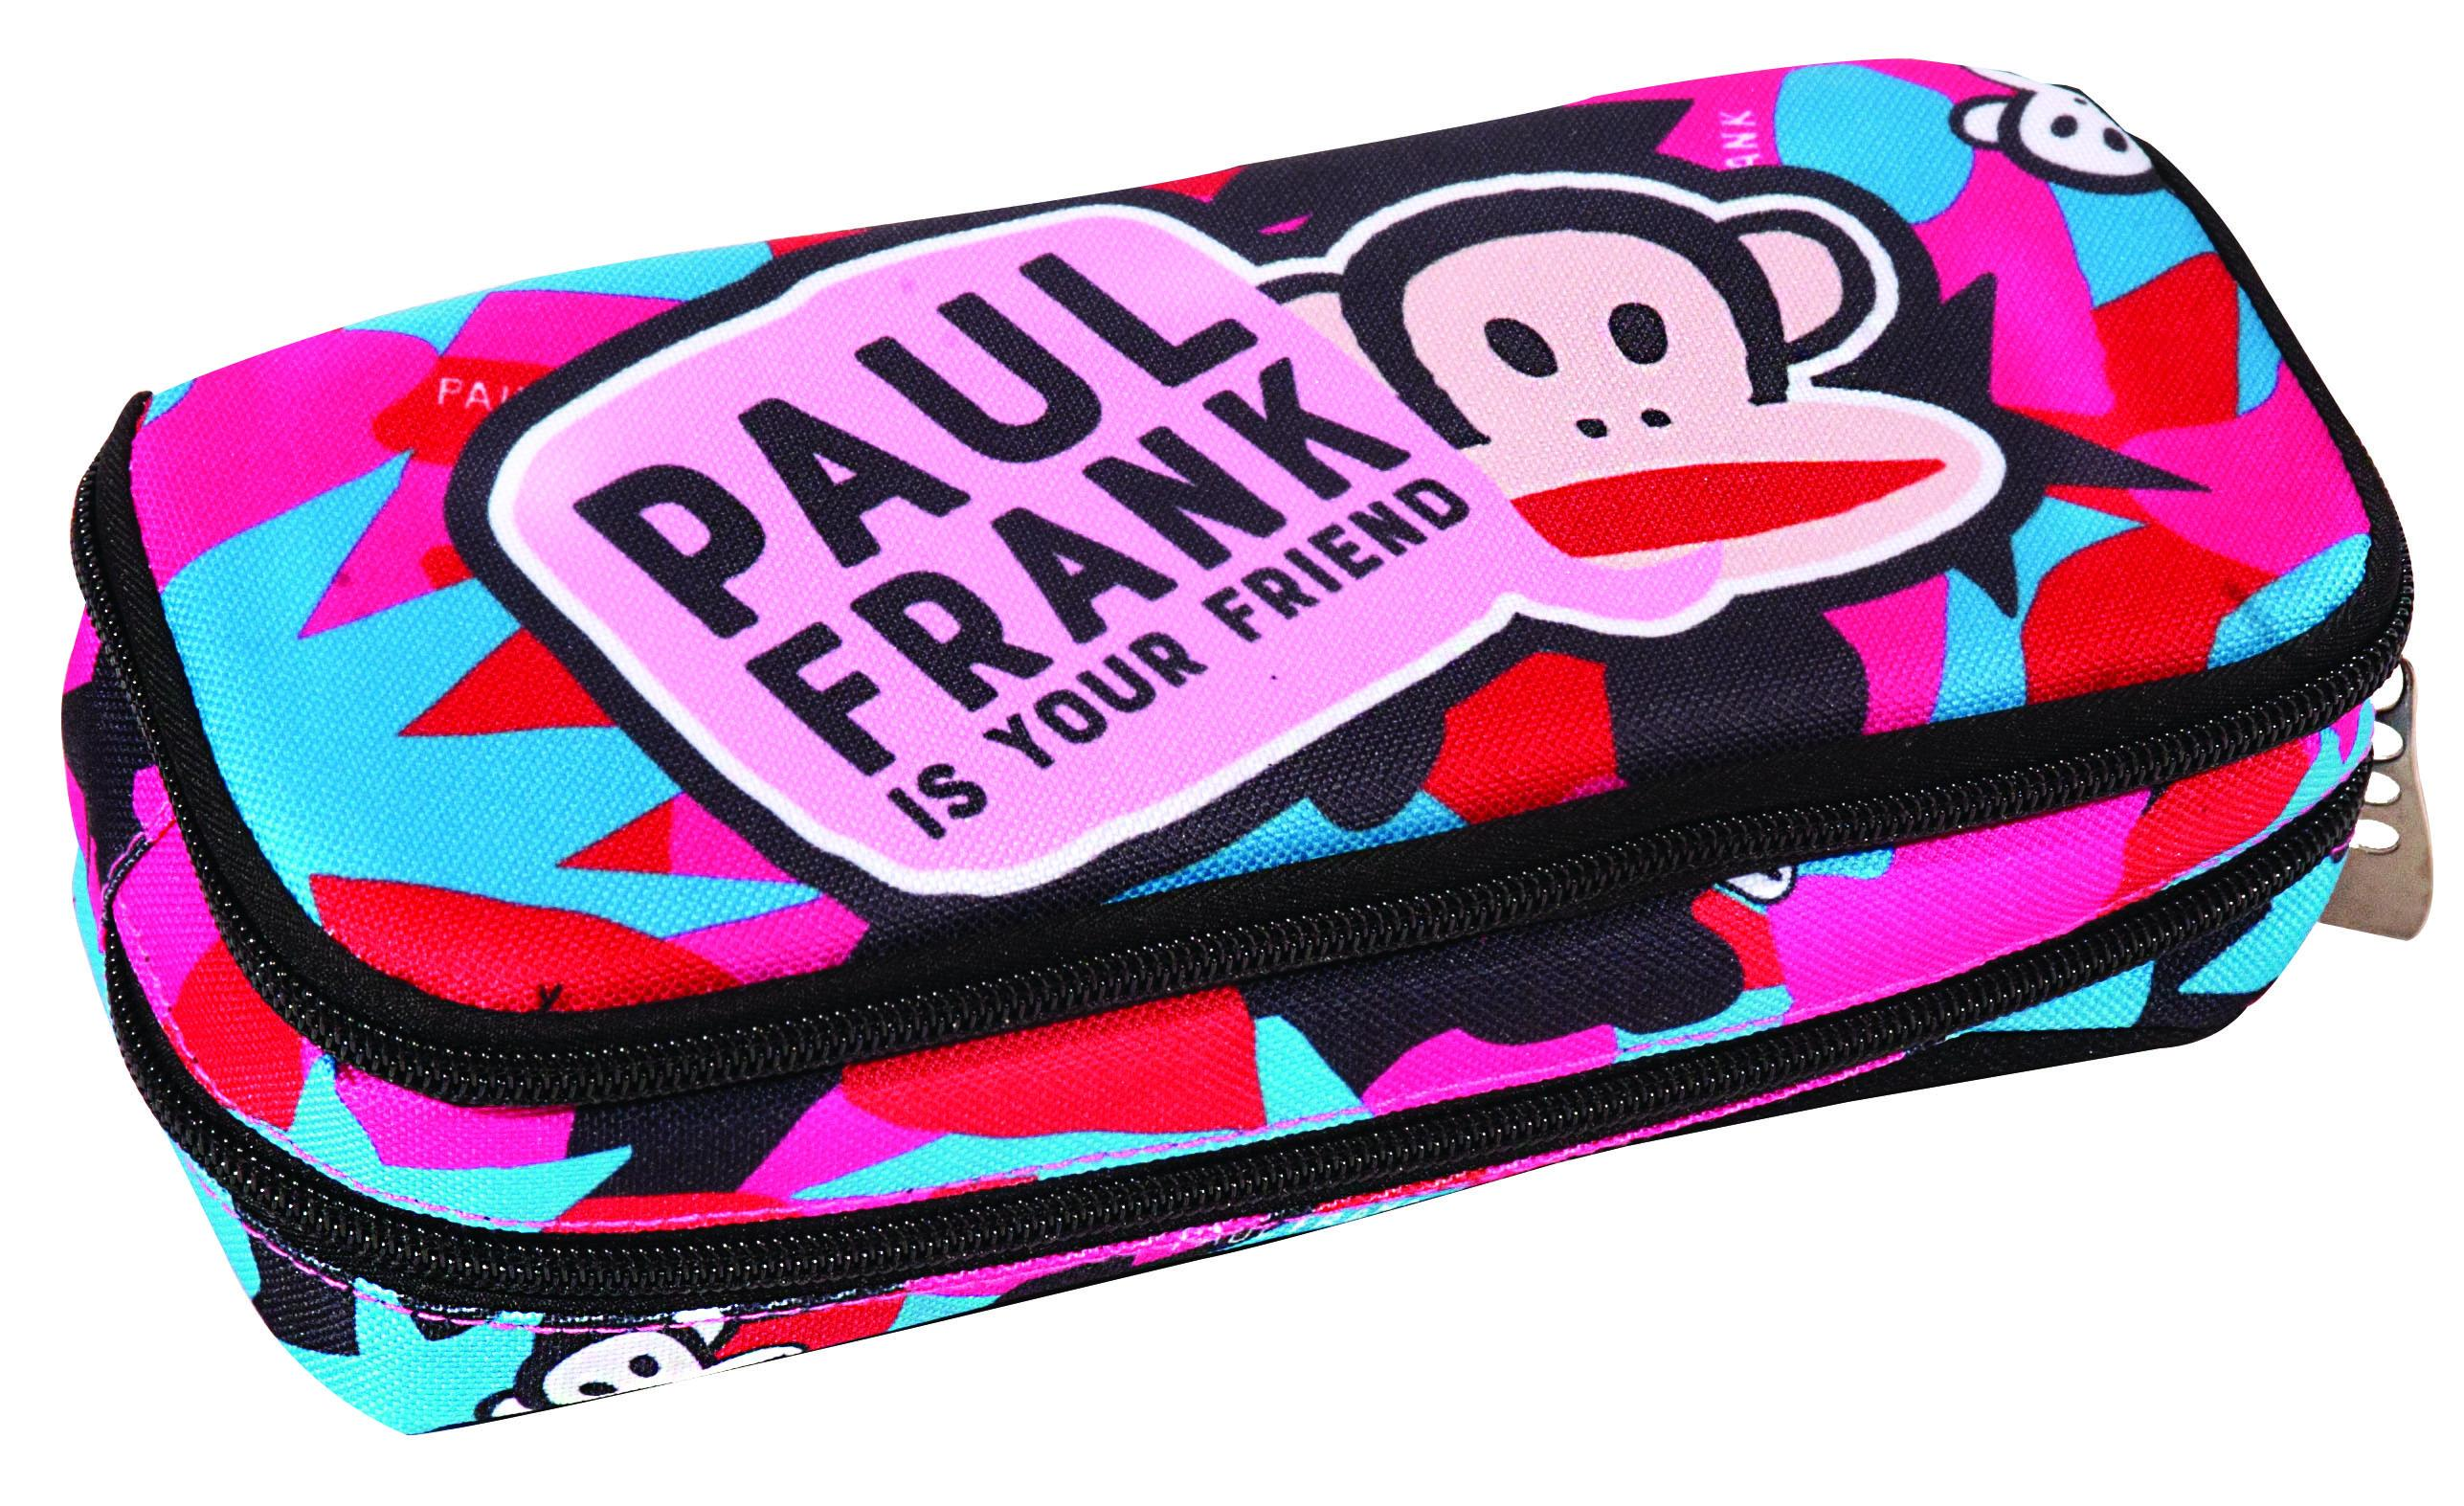 Βαρελάκι BMU Paul Frank Your Friend (60141)